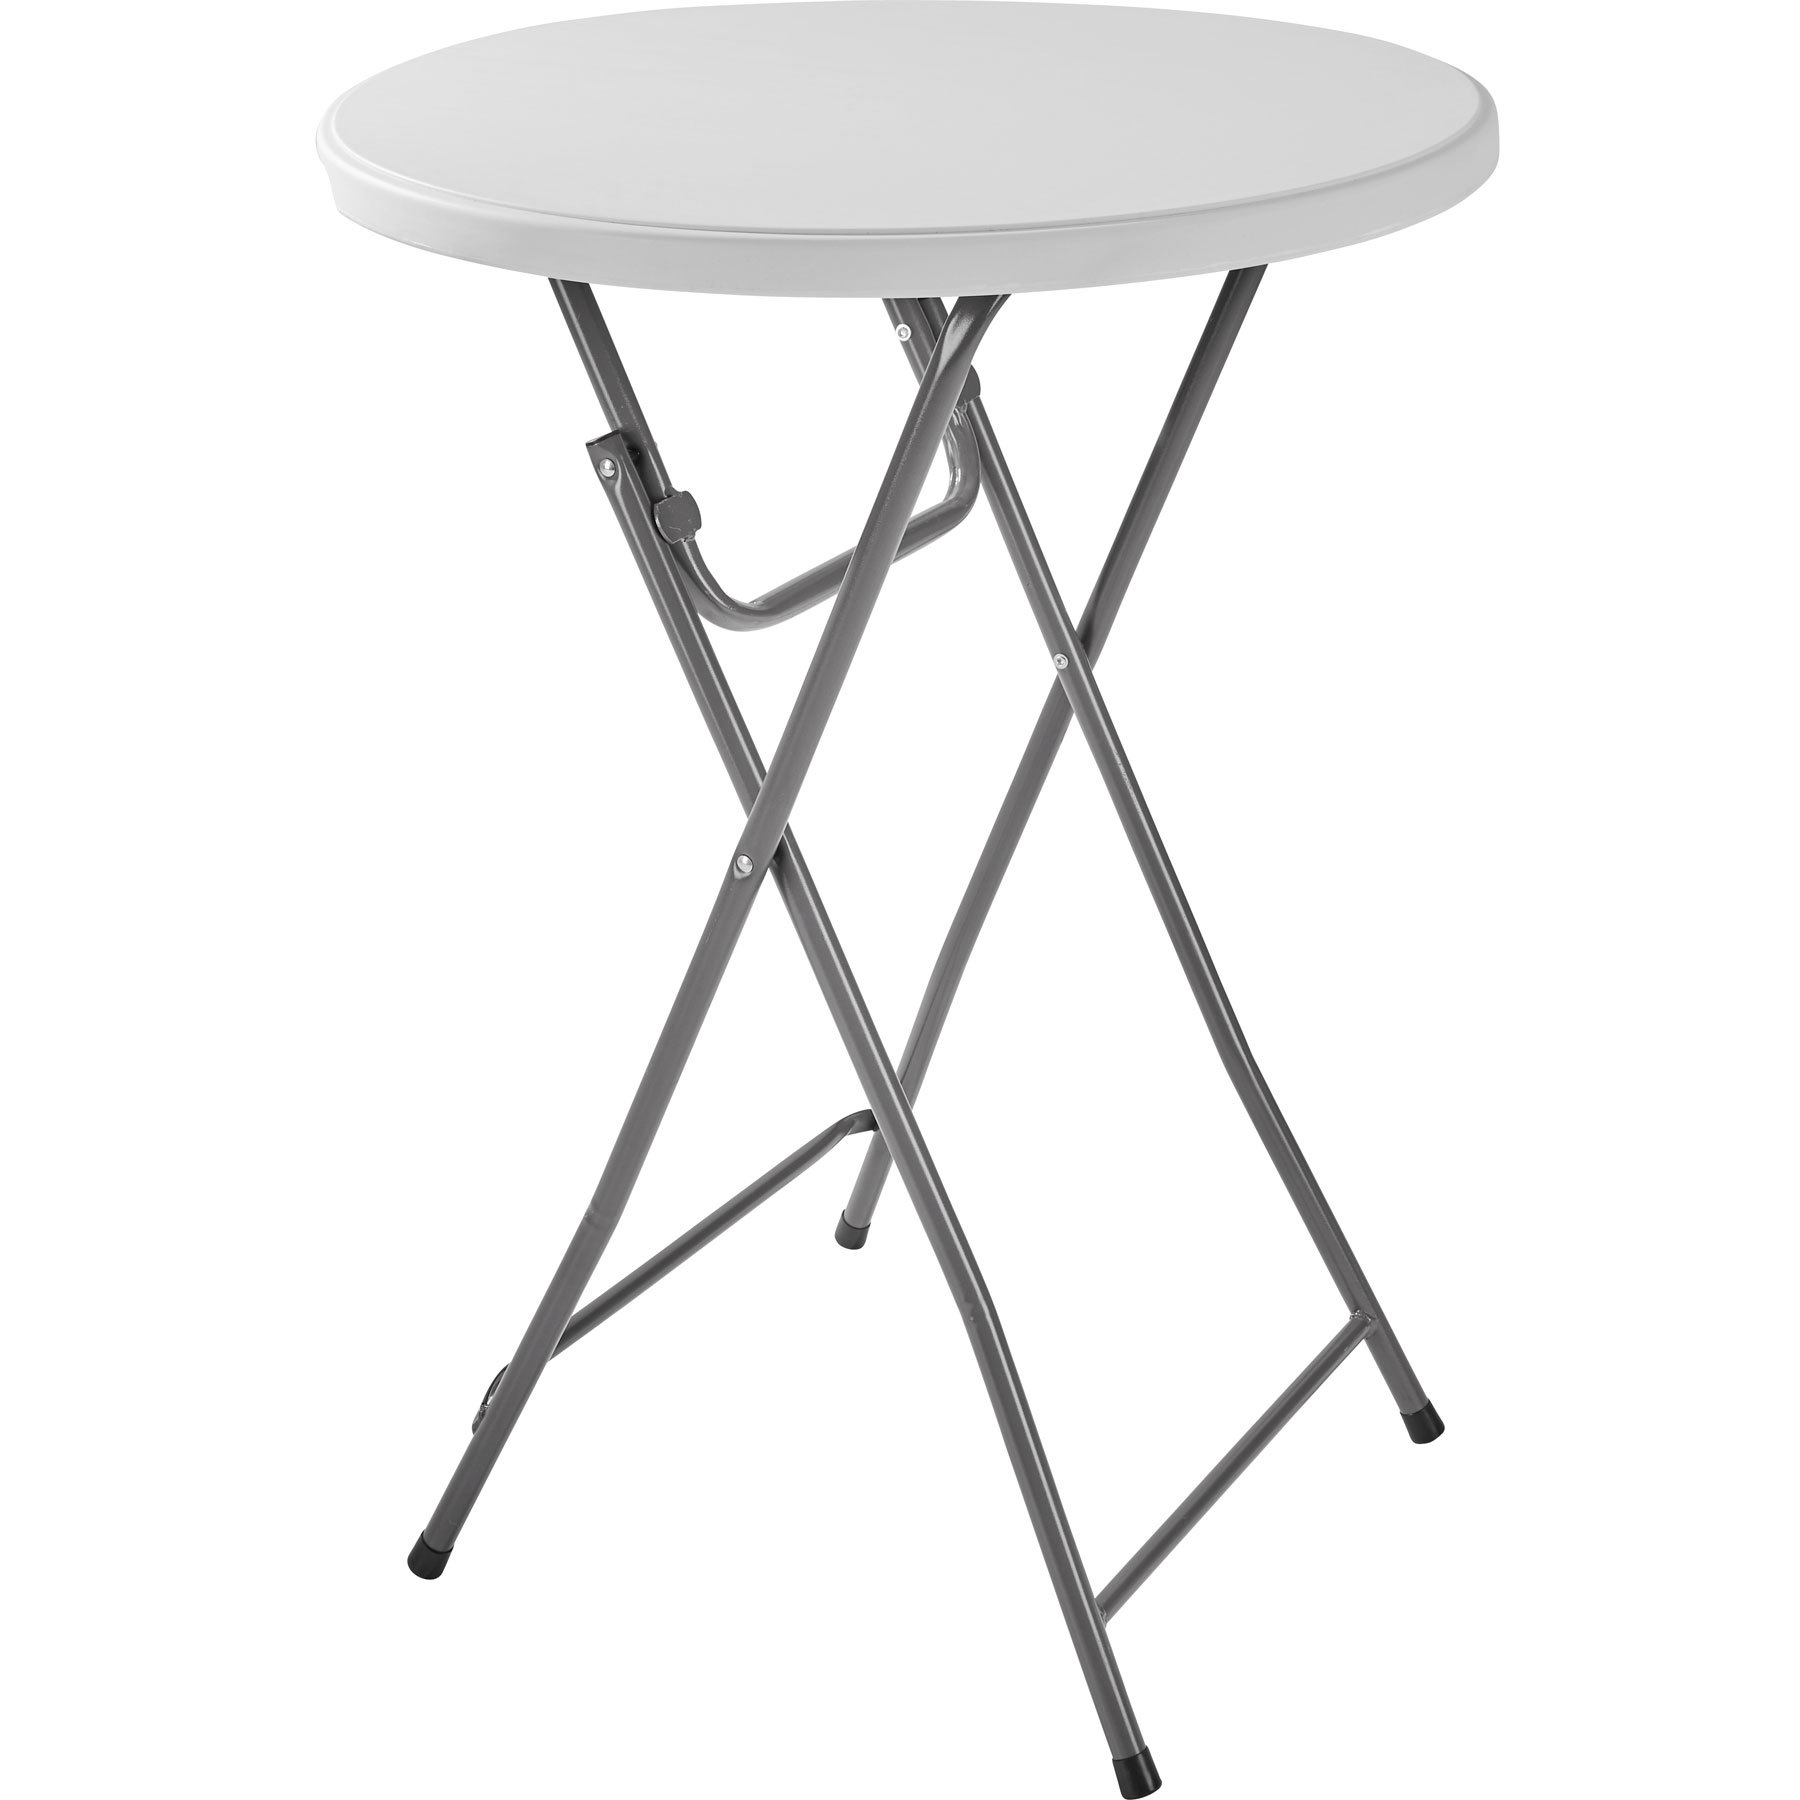 Table Haute, Table de Jardin, Table de Bar, Table Haute Mange Debout, Table  de Bistro Pliante 80 cm x 80 cm x 110 cm Gris